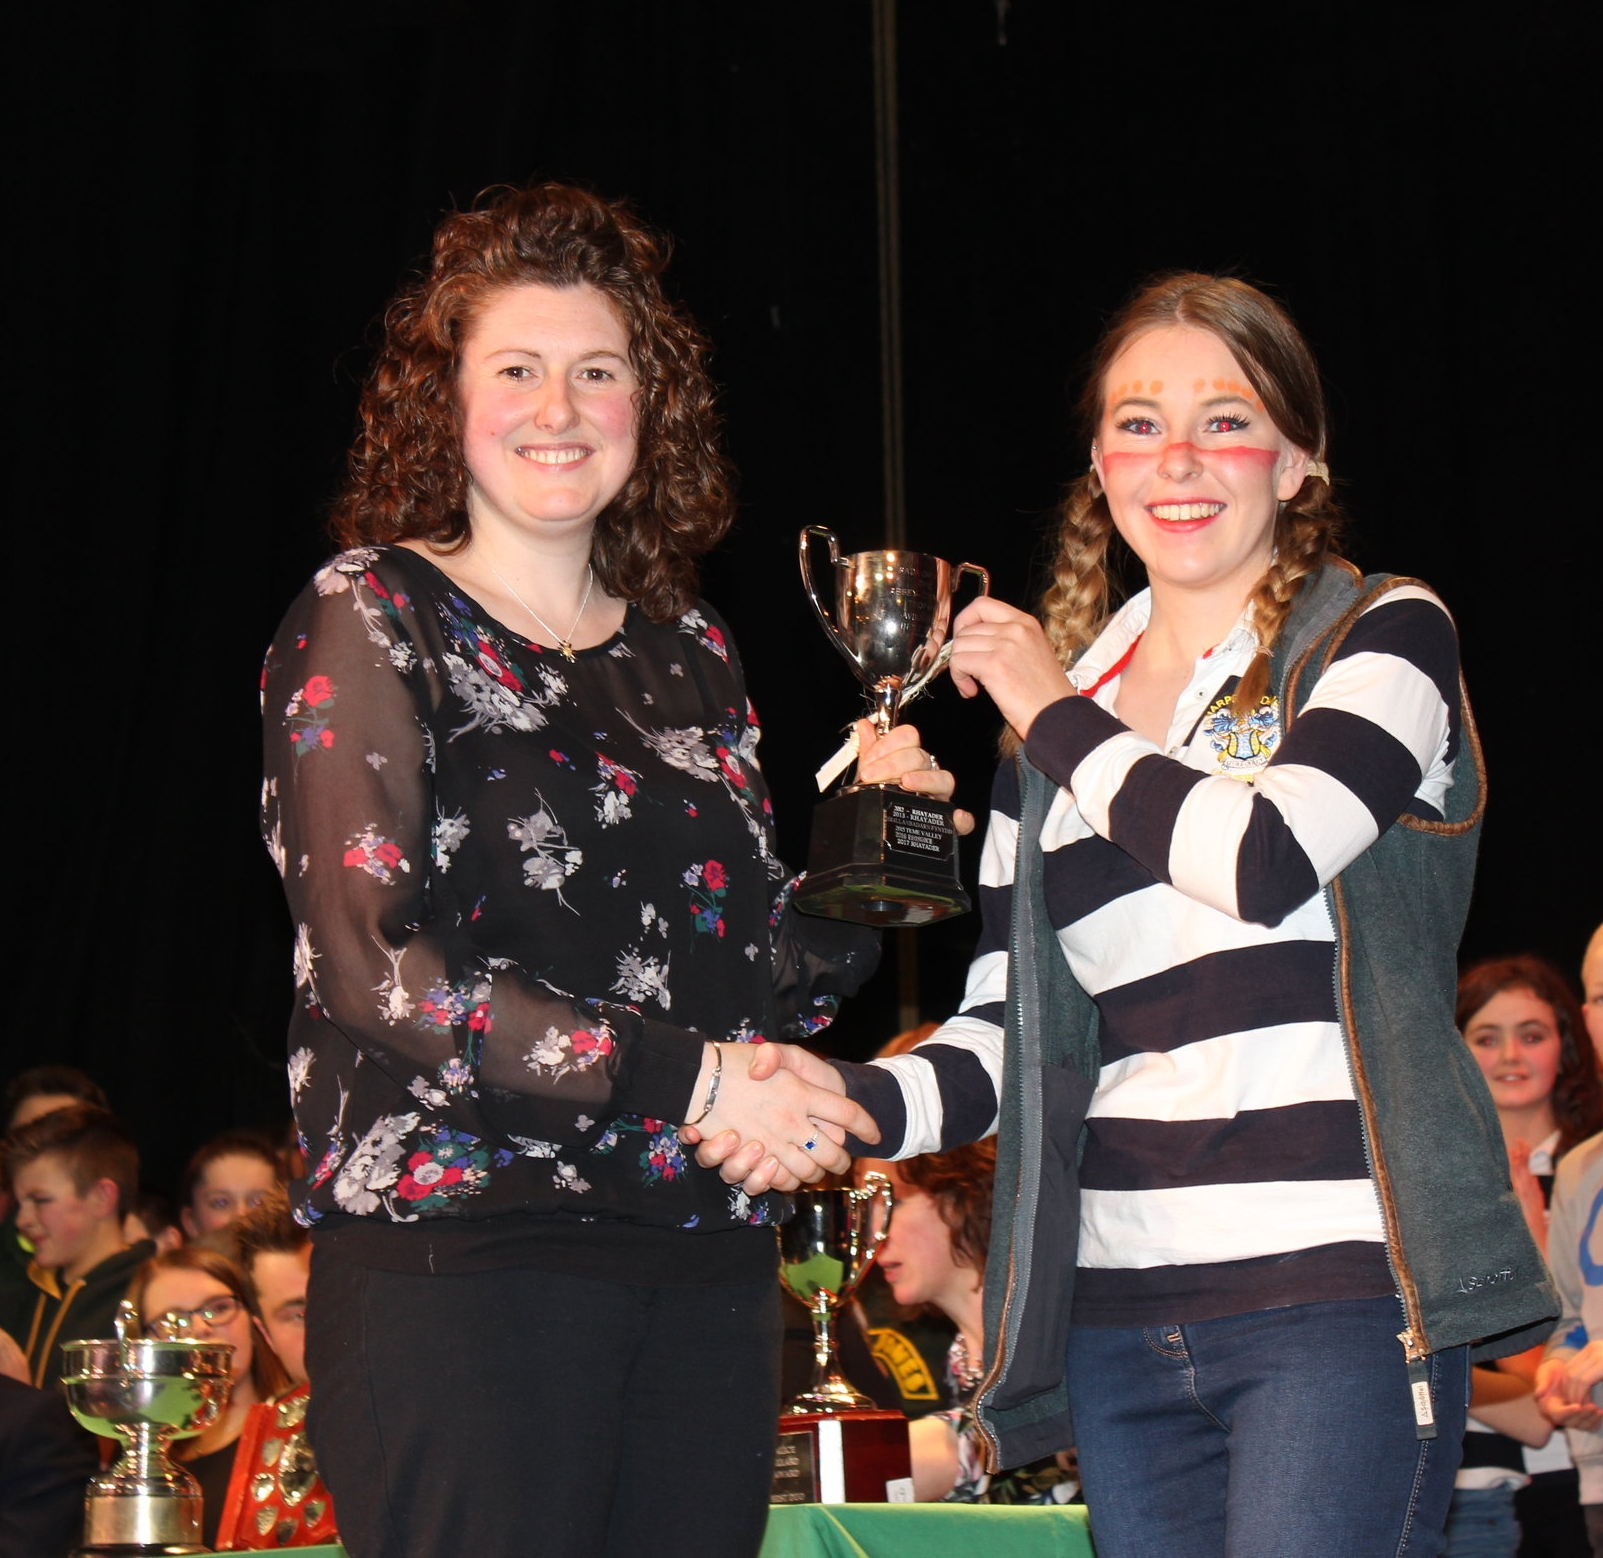 Chloe Jones, Edw Valley YFC with the 'Abbey Cwm Hir Hall Trophy' for Best Set being presented by Avril Hardwick, Barlcays